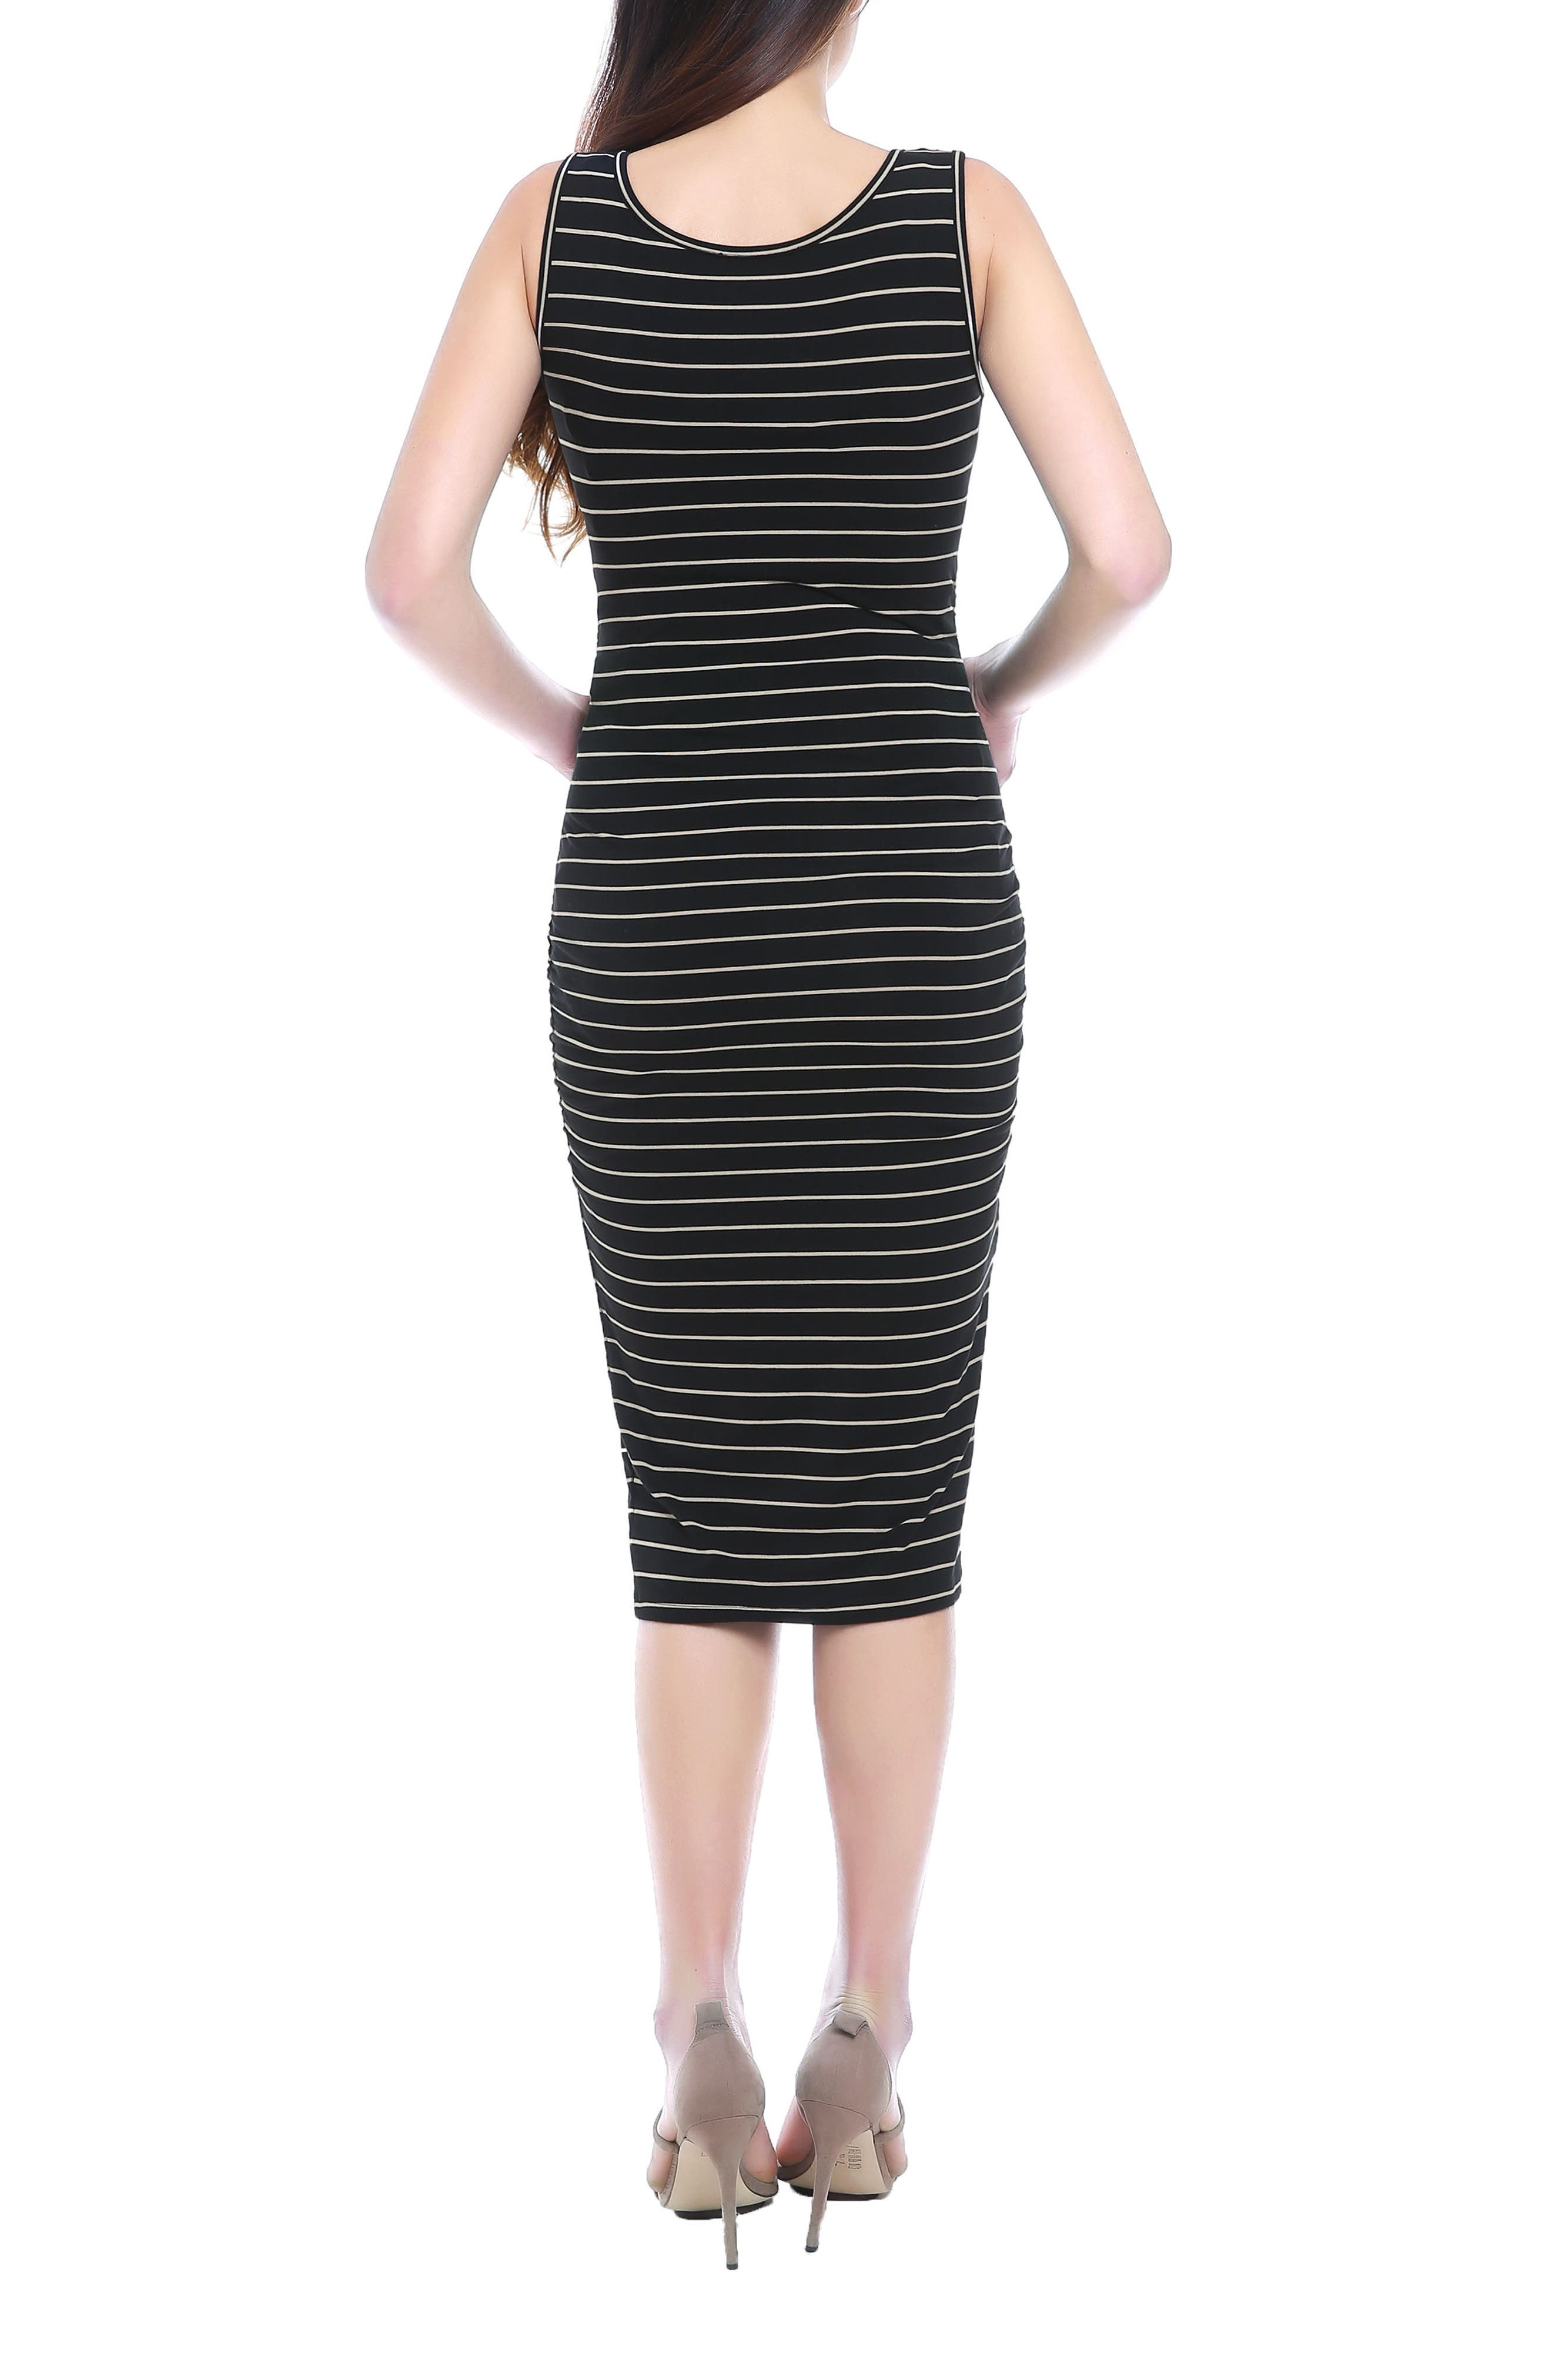 Tobi Stripe Maternity Dress,                             Alternate thumbnail 2, color,                             BLACK/ BEIGE